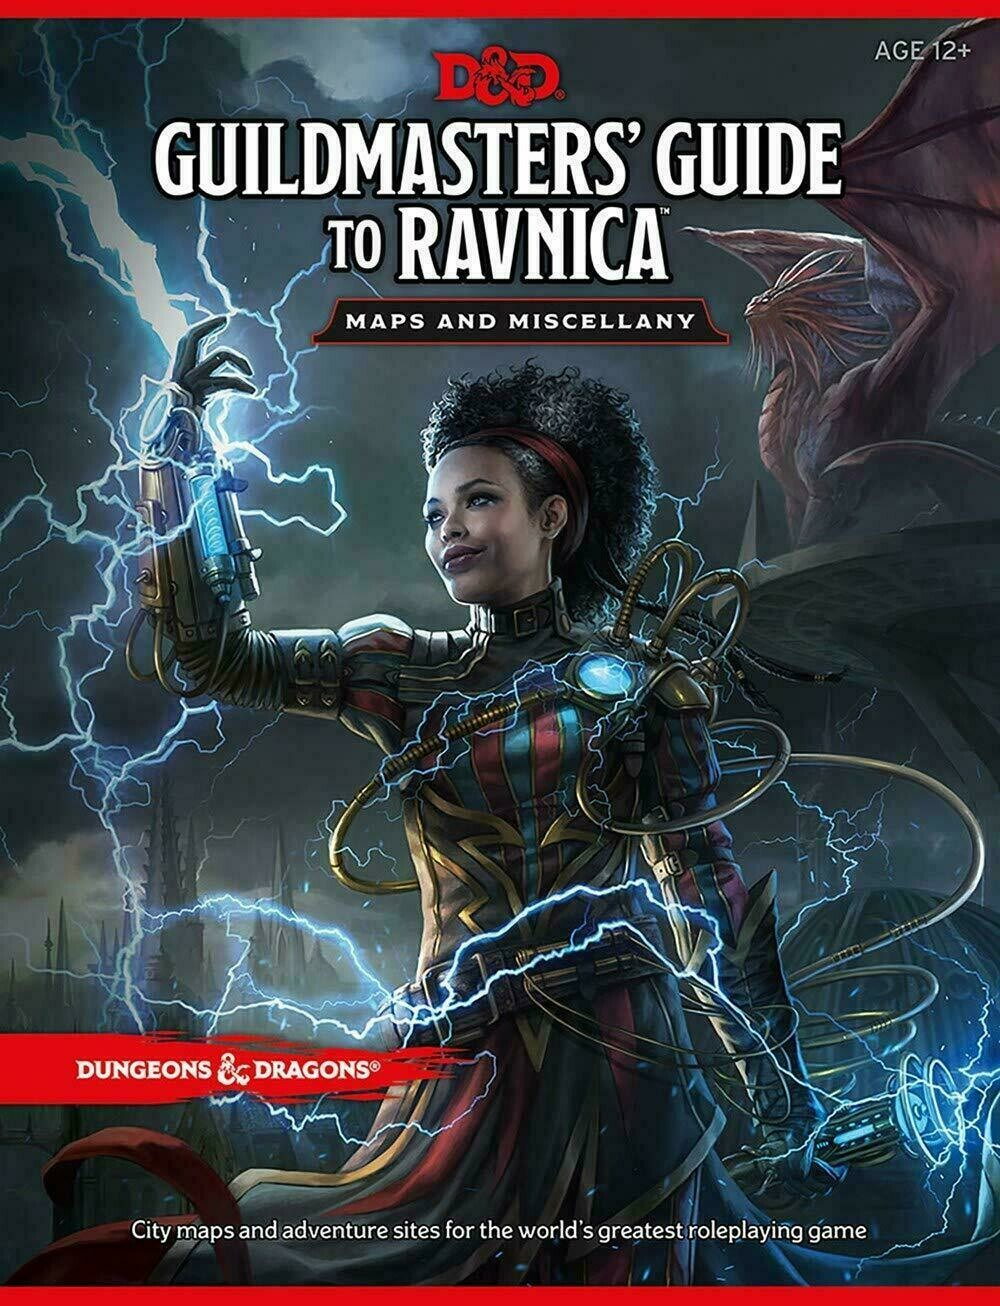 D&D Guildmaster's Guide to Ravnica Maps & Miscellany - Quinta Ed.